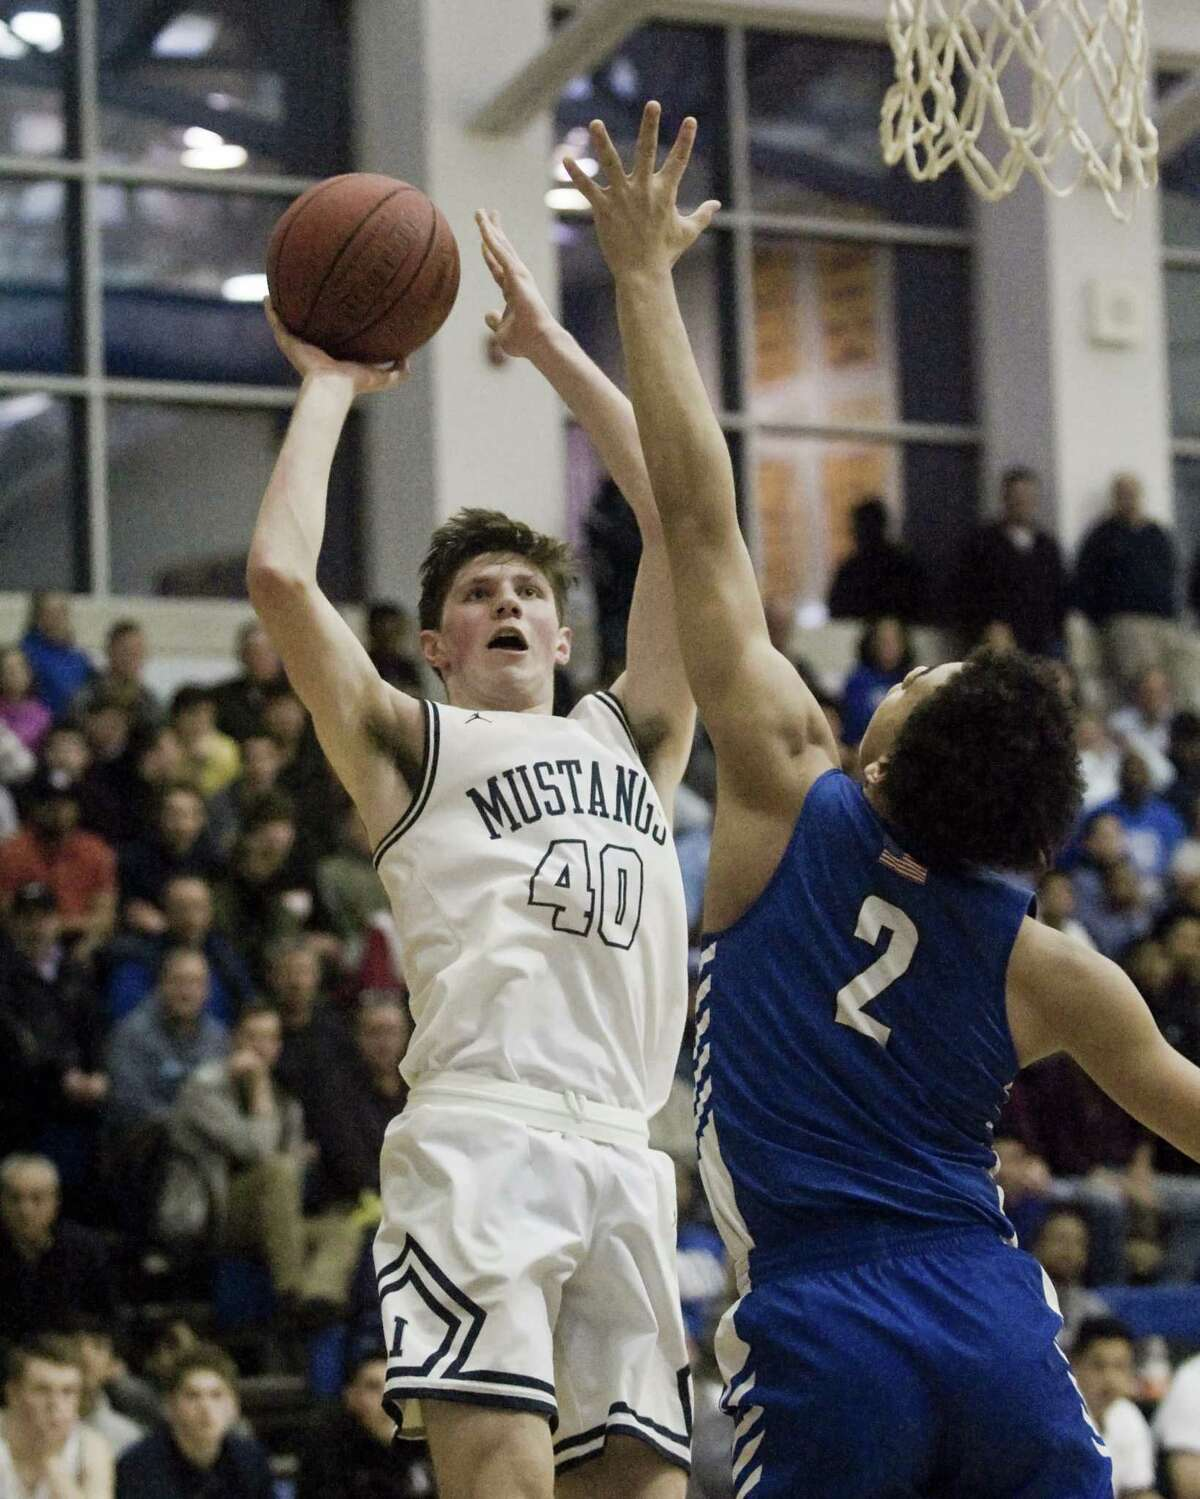 Immaculate High School's Sean Guiry gets off a shot in the SWC championship boys basketball game against Bunnell High School, played at Newtown High School. Thursday, Feb. 28, 2019